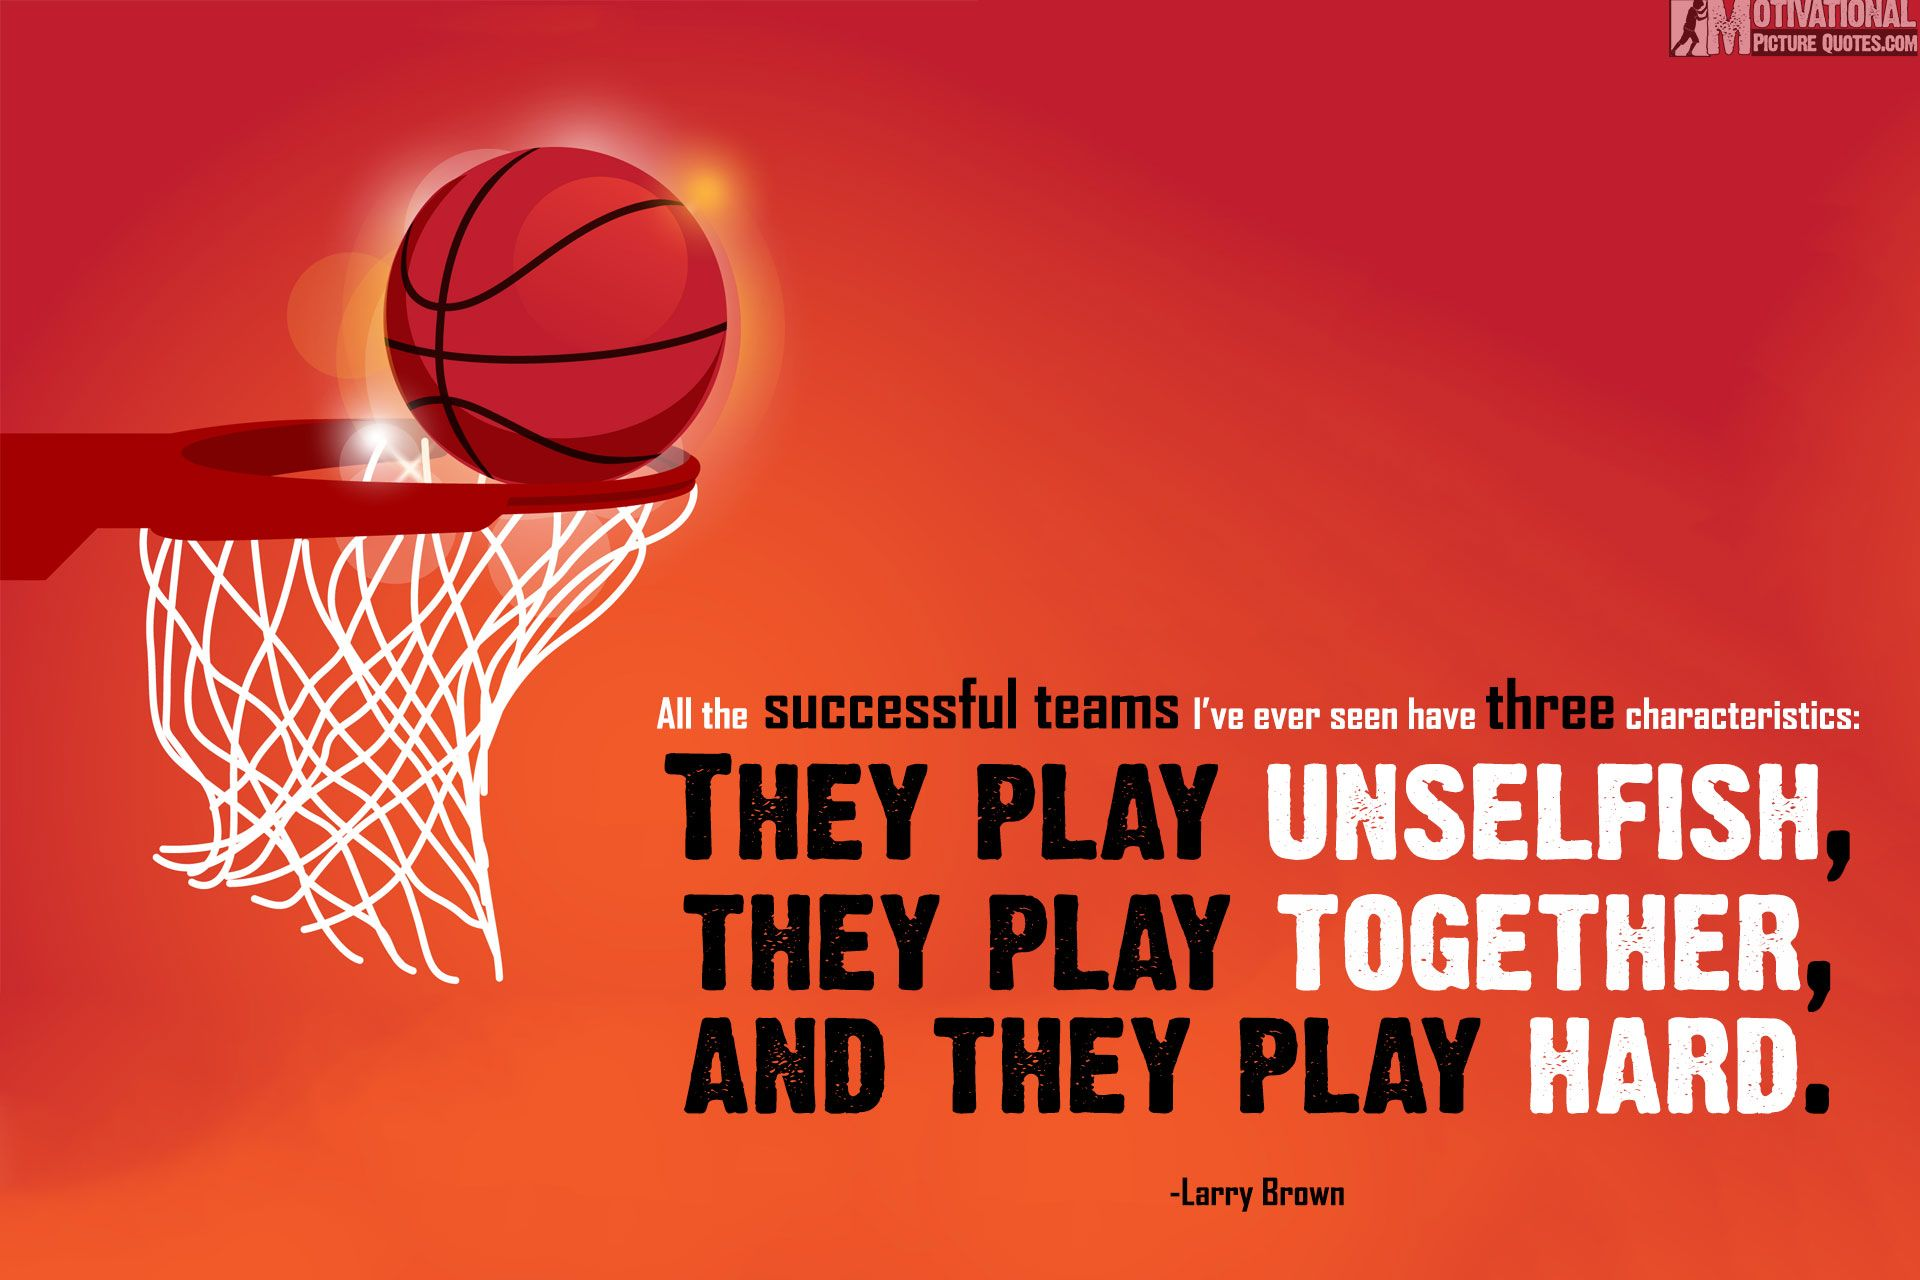 inspiring basketball quotes by Larry Brown Motivational